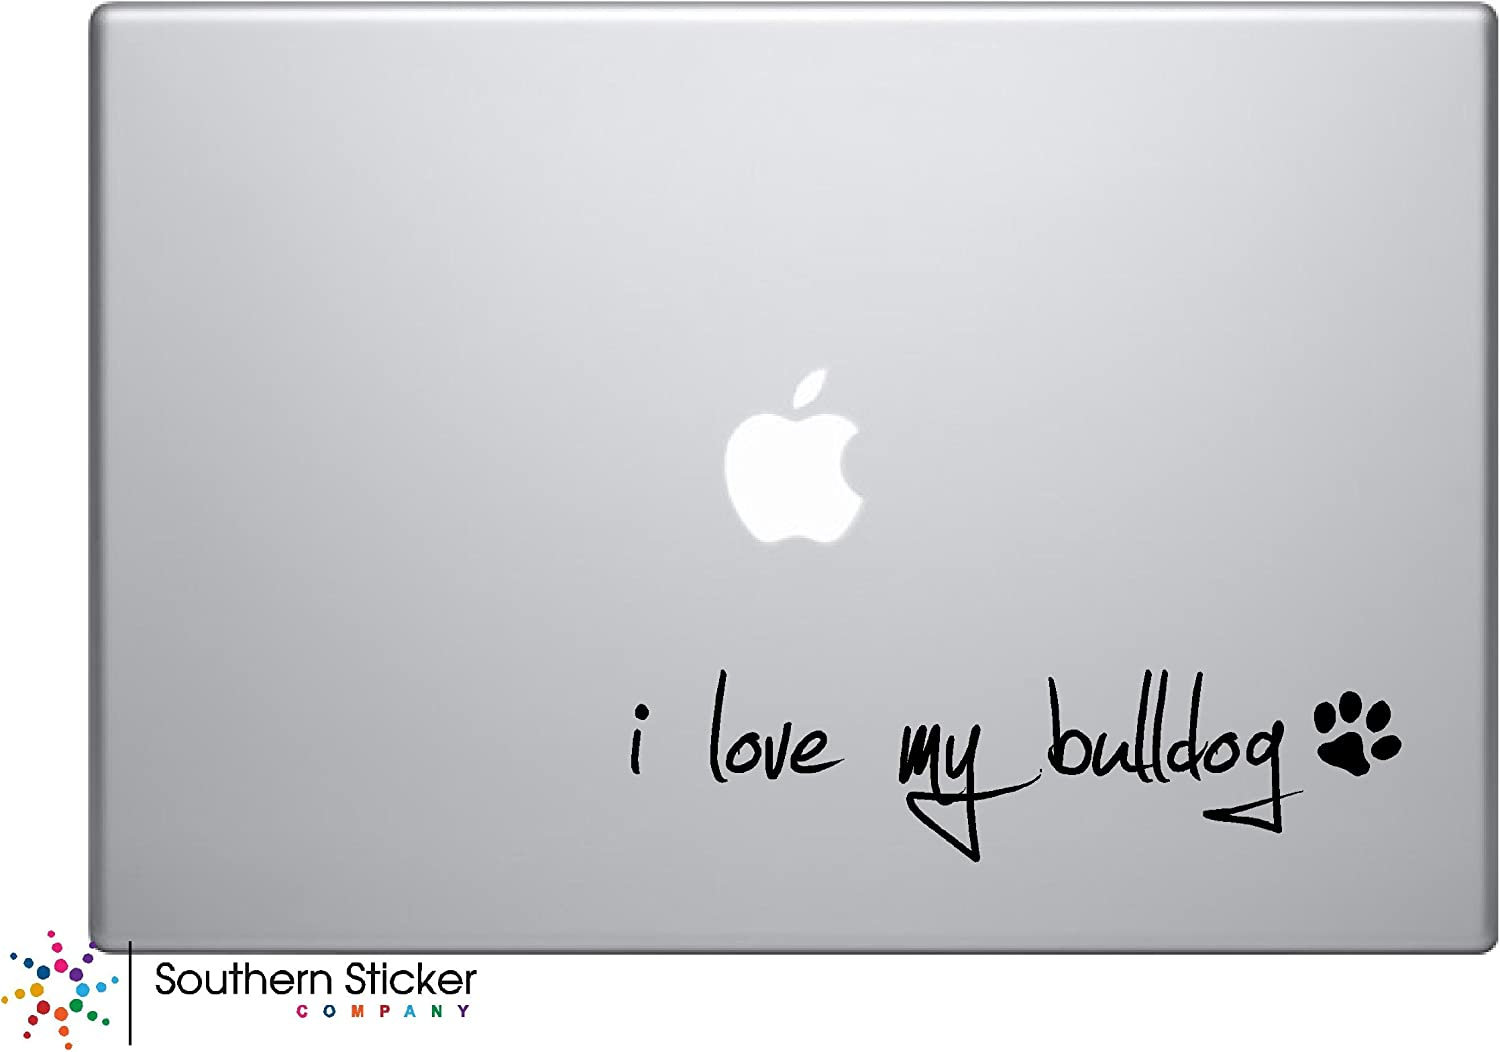 I Love My Bulldog Dog Puppy Vinyl Car Sticker Symbol Silhouette Keypad Track Pad Decal Laptop Skin Ipad MacBook Window Truck Motorcycle